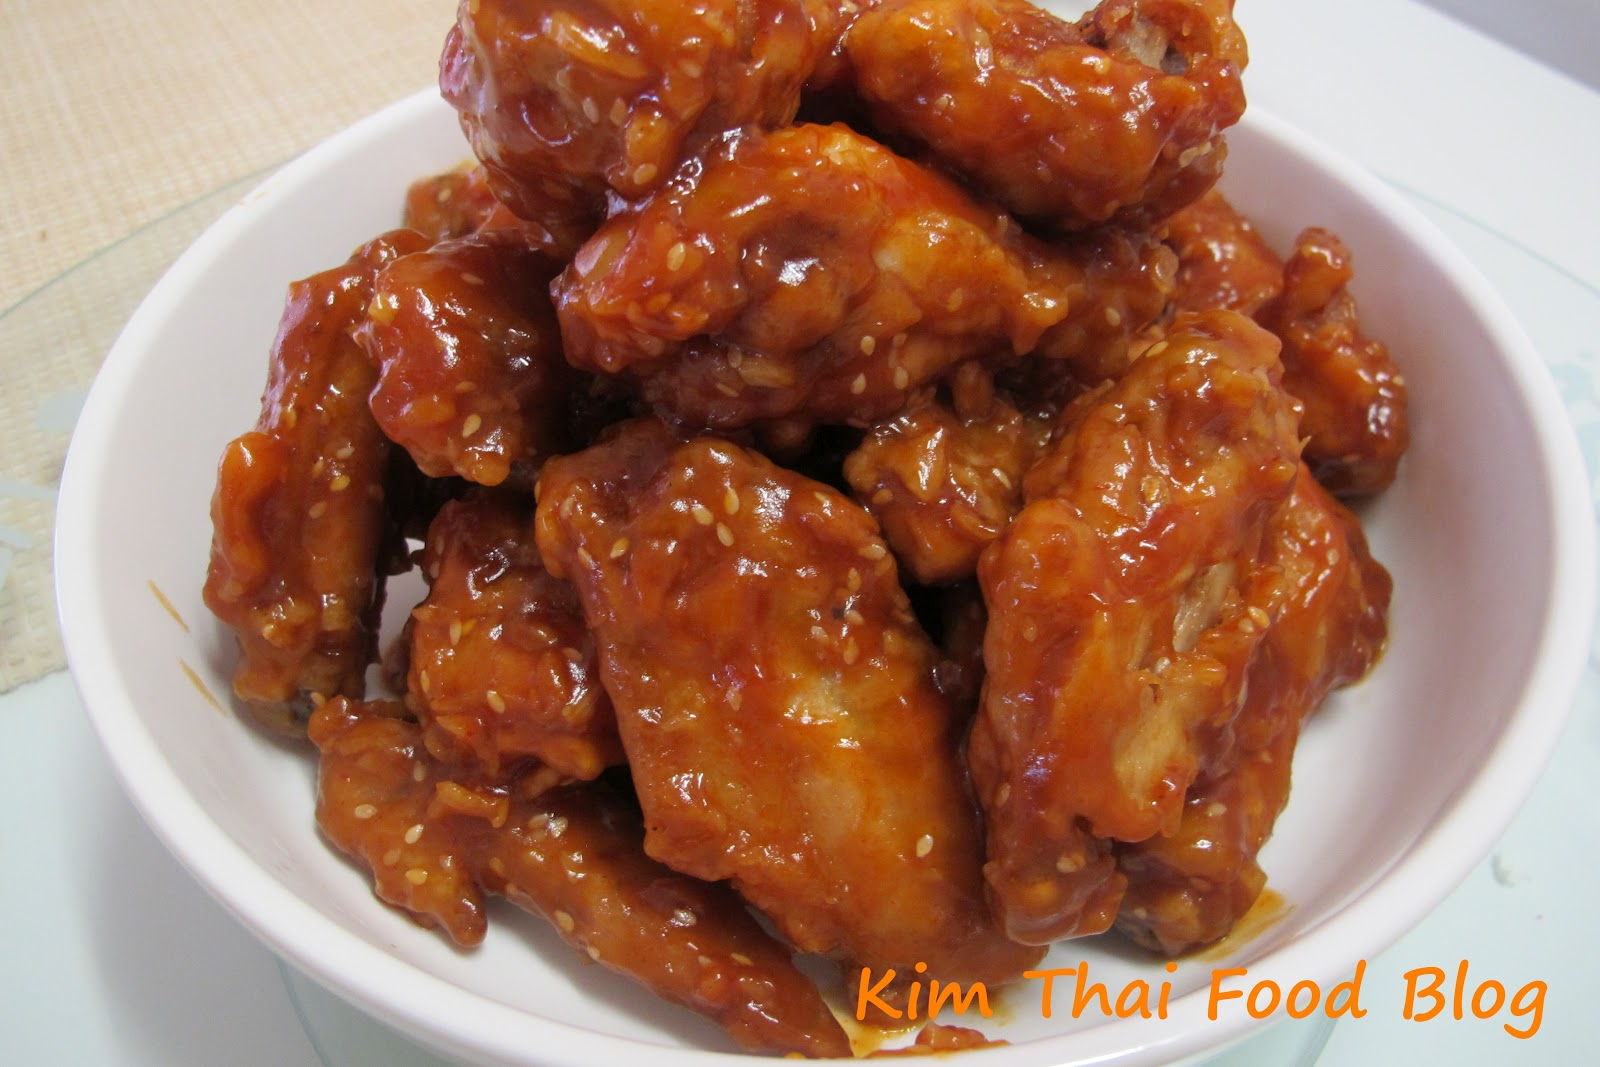 Kim Thai Food Blog: Sweet & Sour Fried Chicken Wing ...